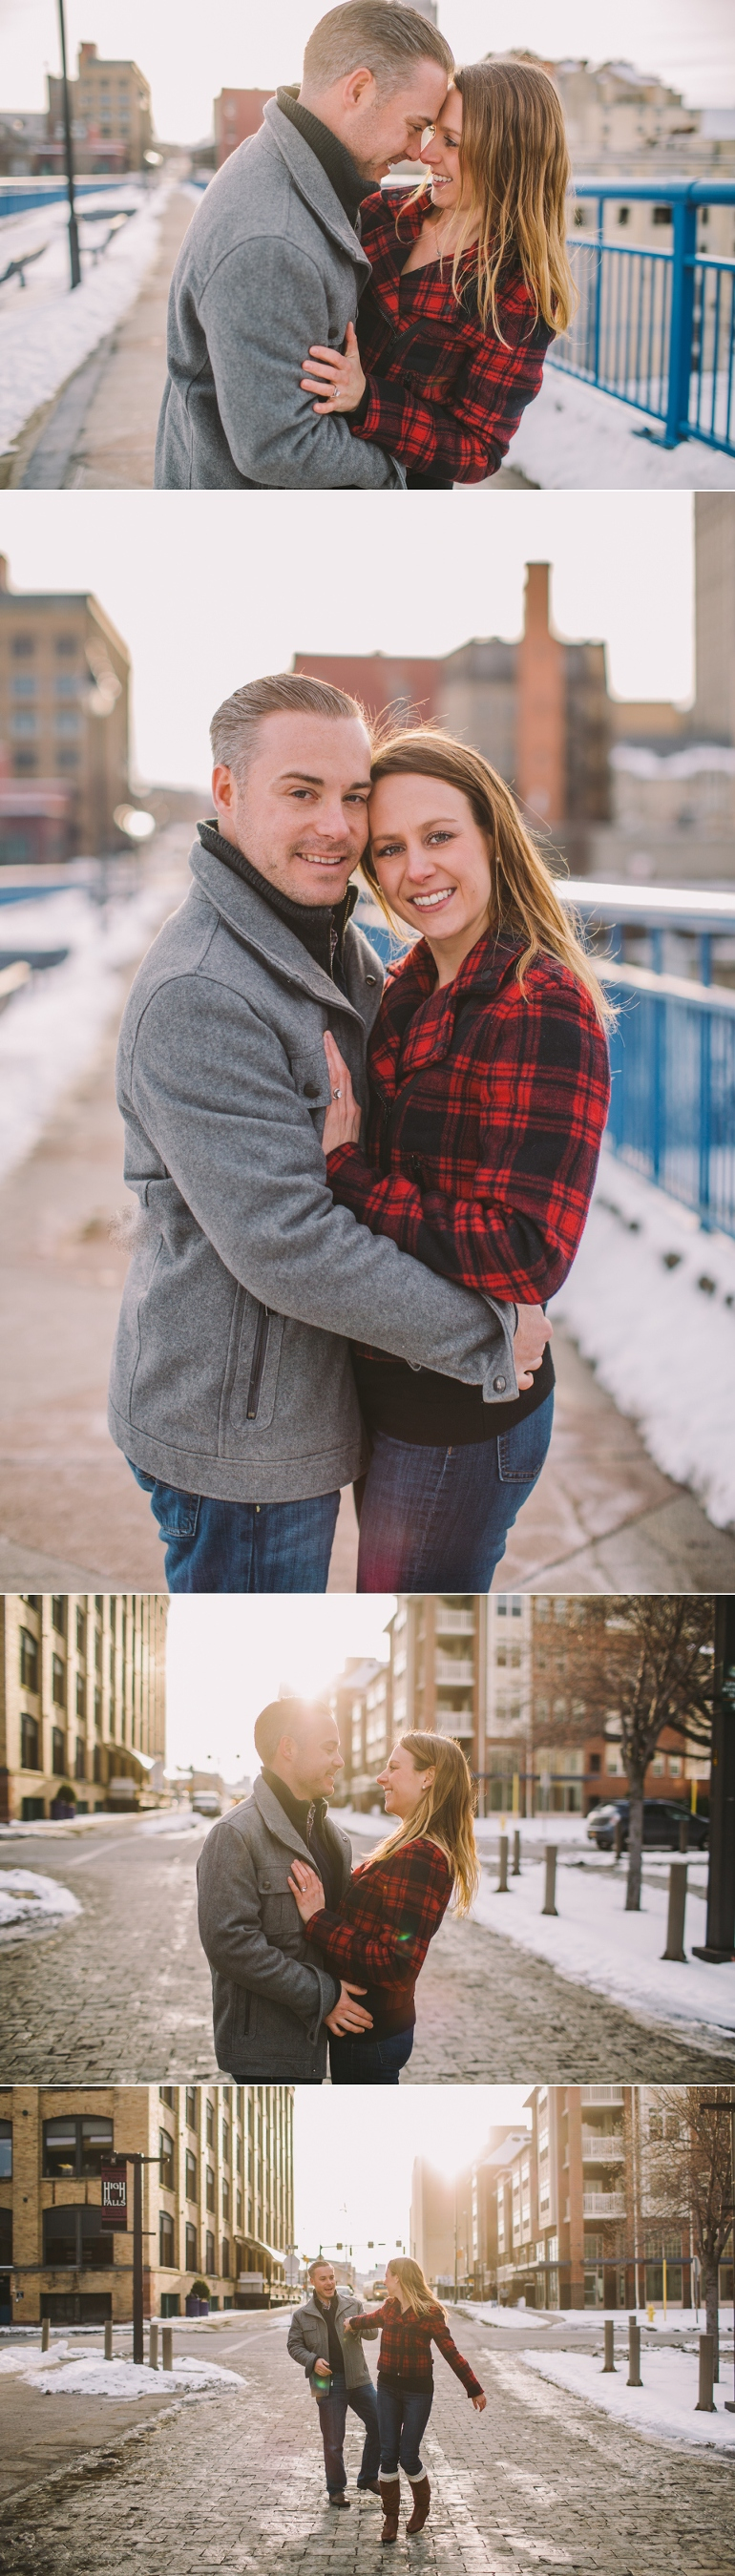 george-eastman-house-engagement-shoot-2016-tb_0005